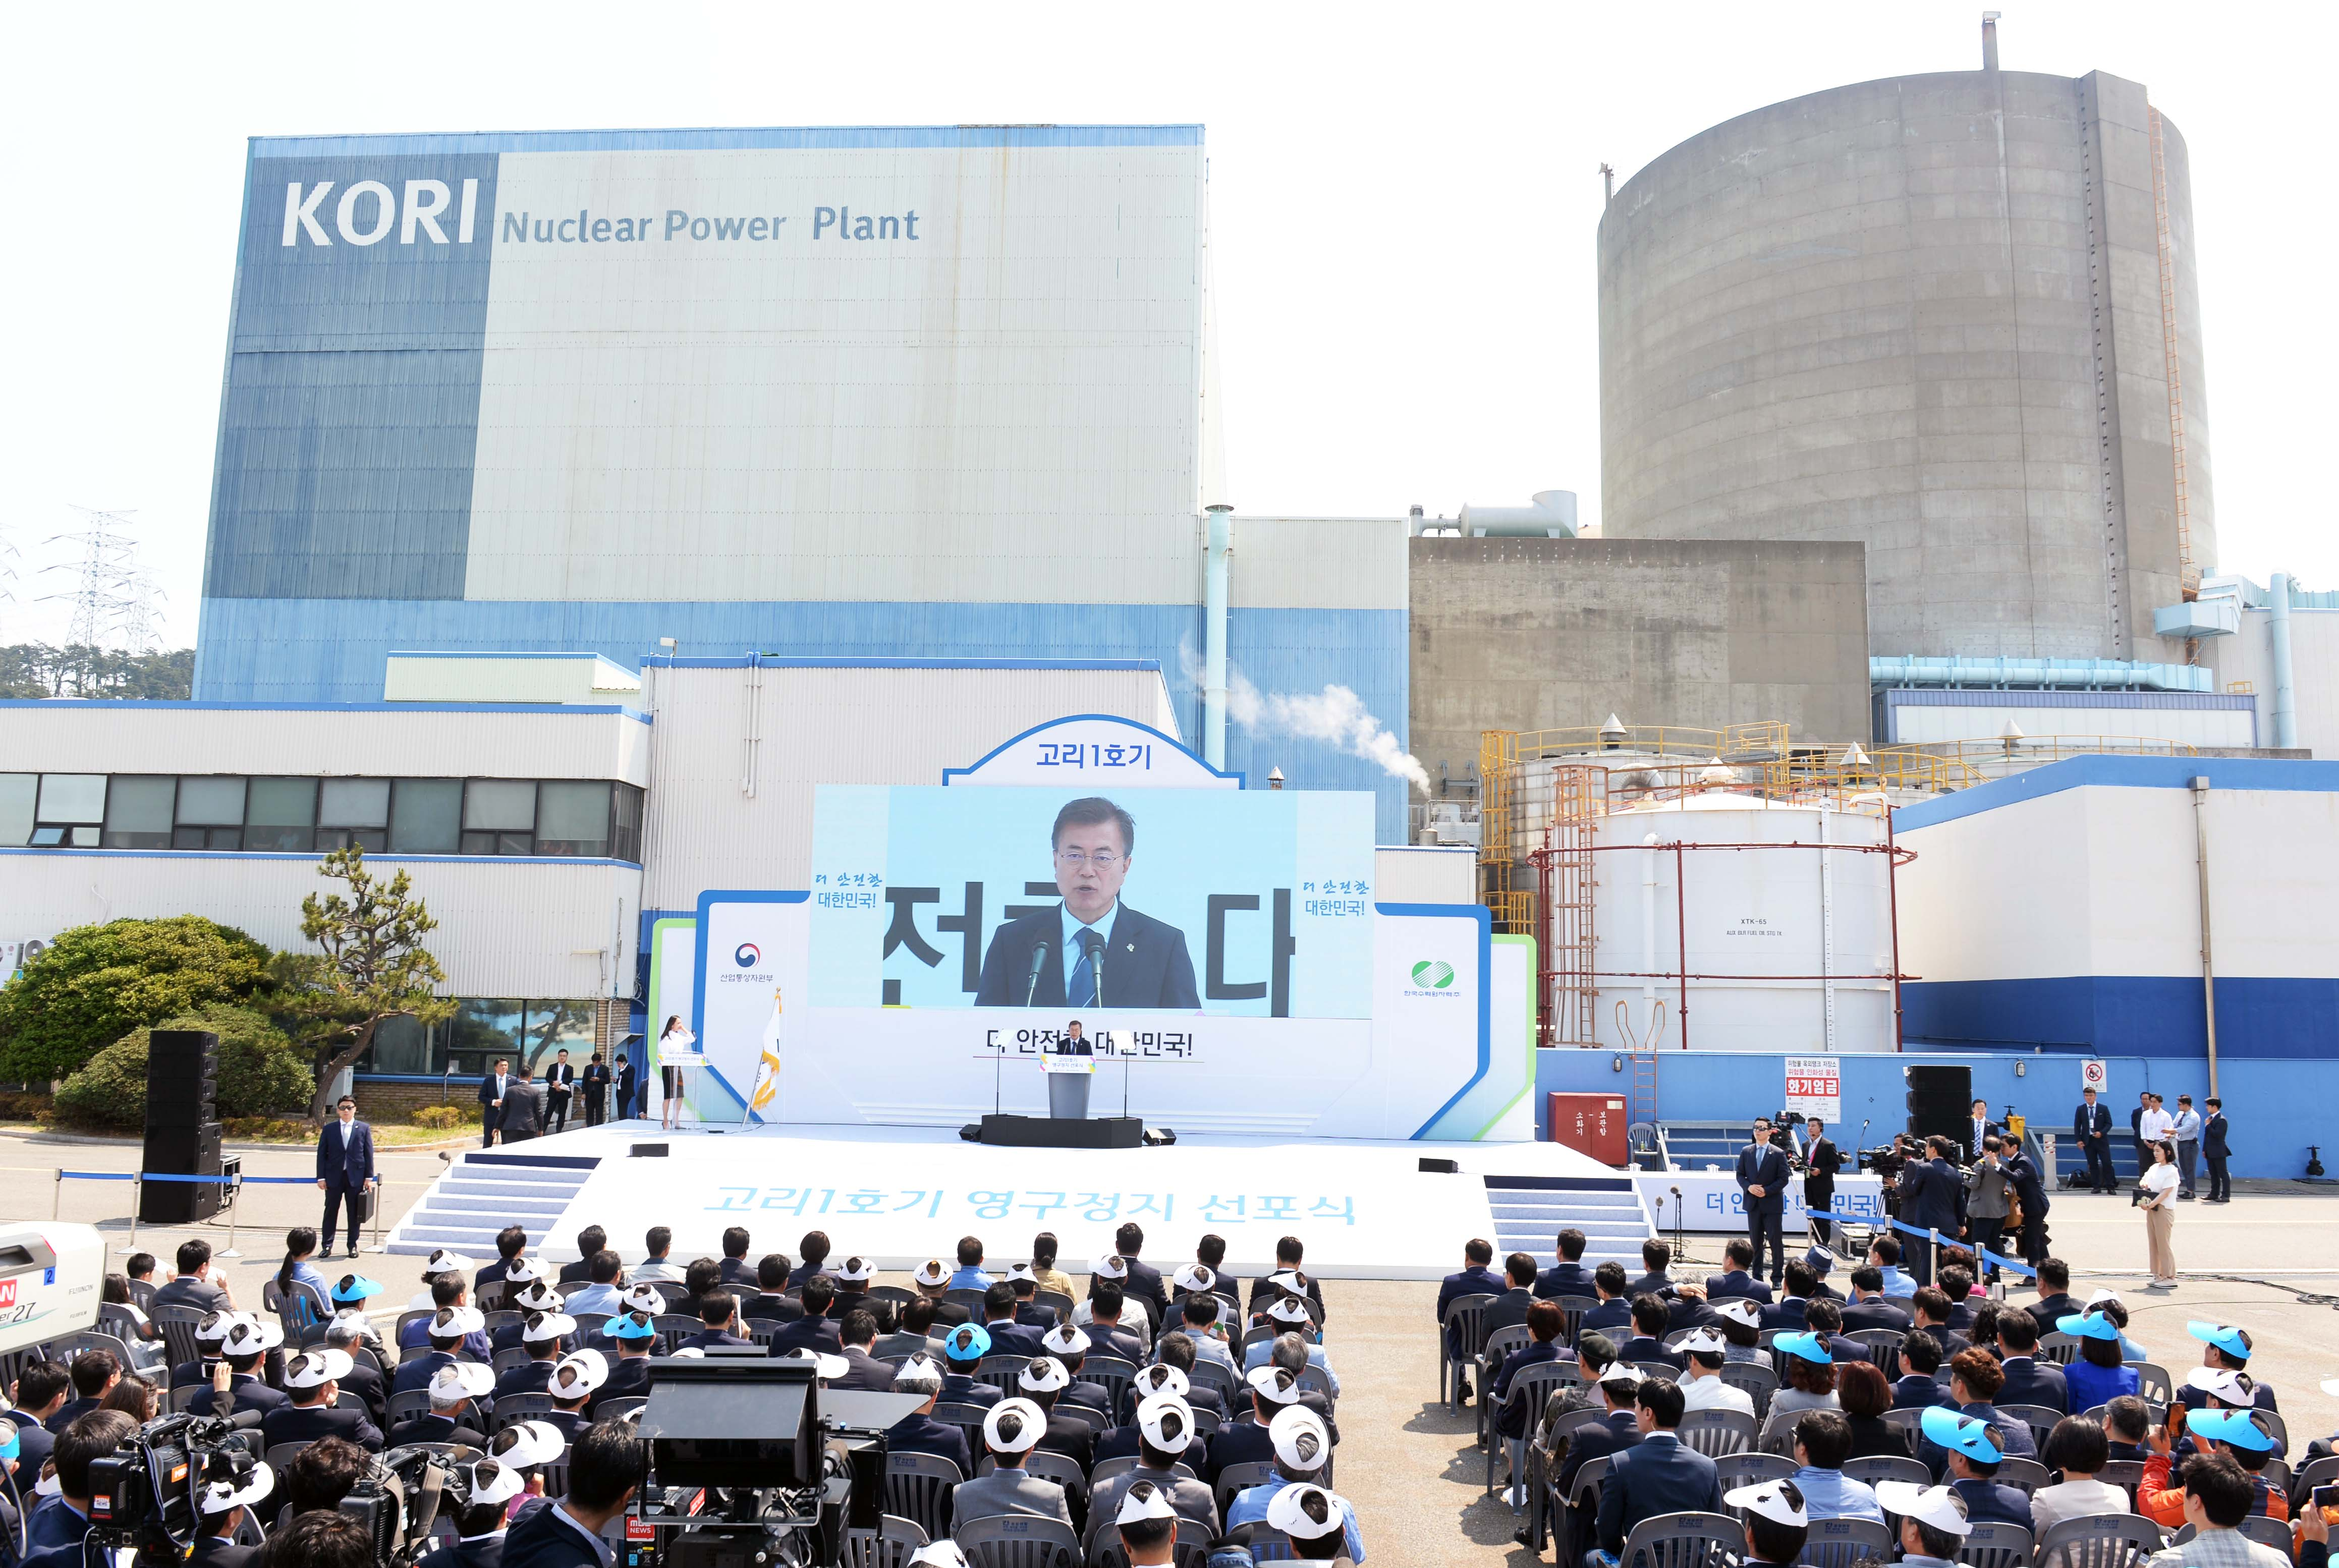 Kori Unit 1, Korea's first nuclear reactor, ceases operations